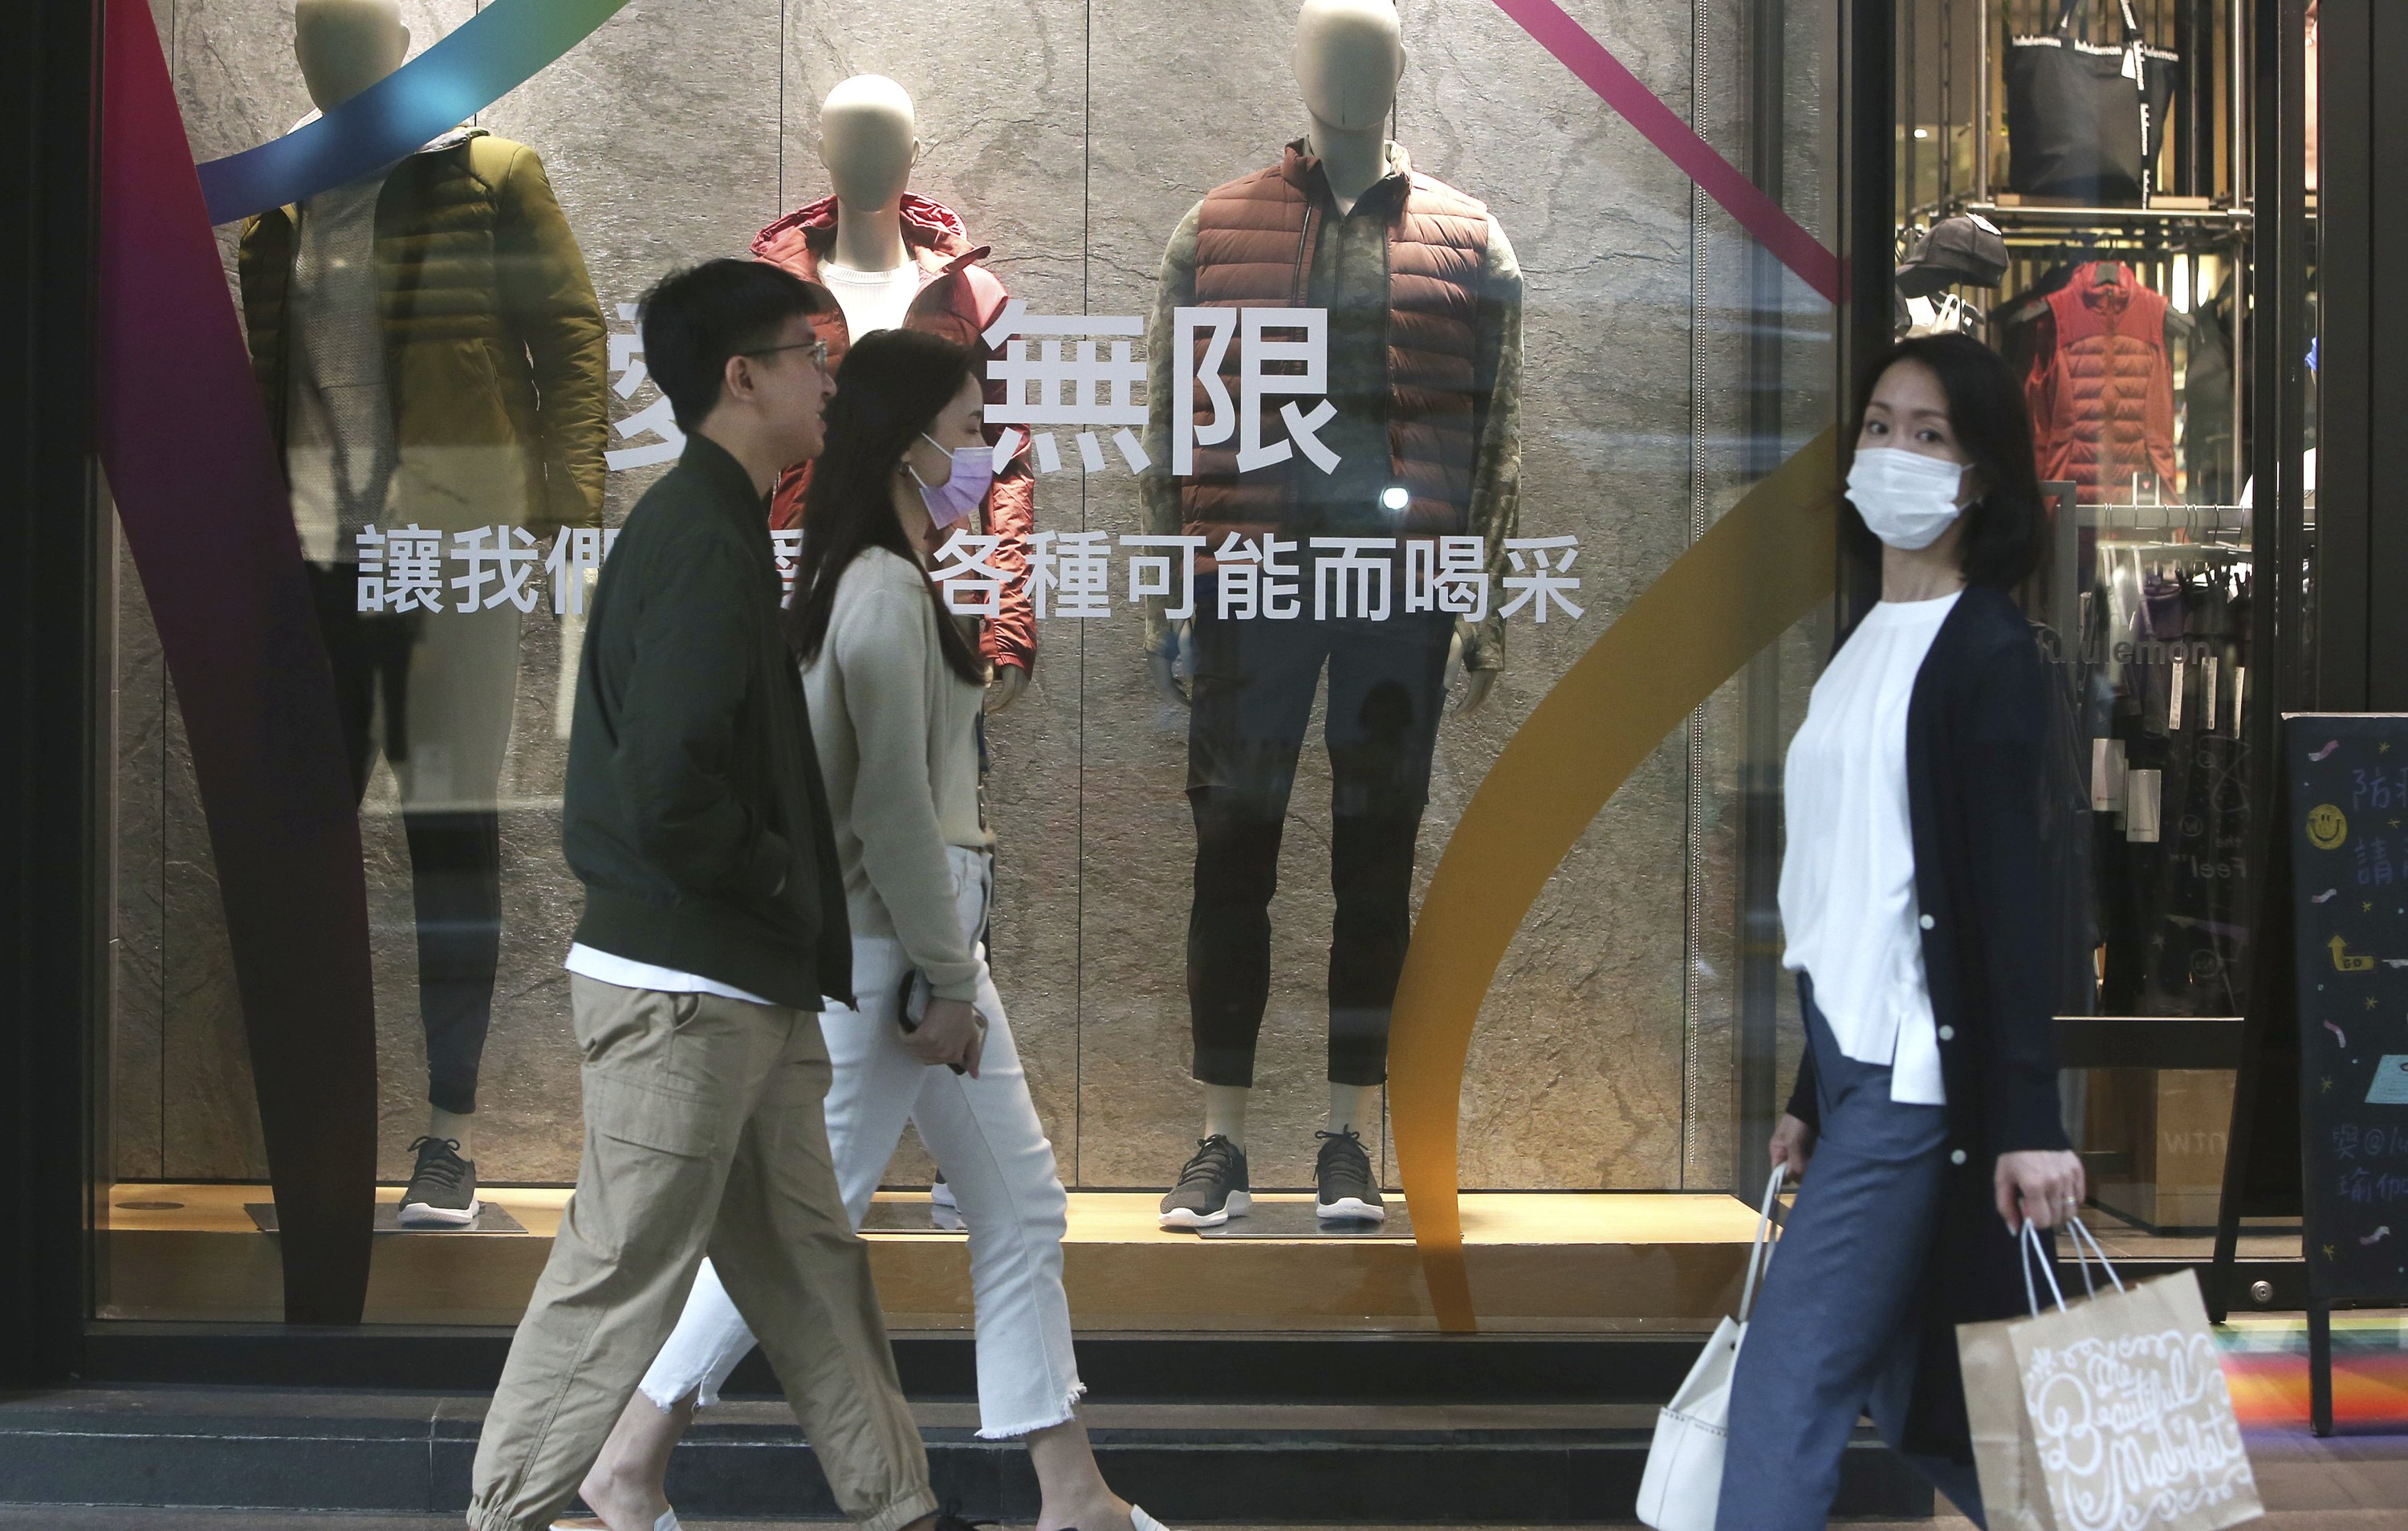 Taiwan has hit 200 days without any domestically transmitted cases of COVID-19, highlighting the island's continued success at keeping the virus under control even as cases surge in other parts of the world.